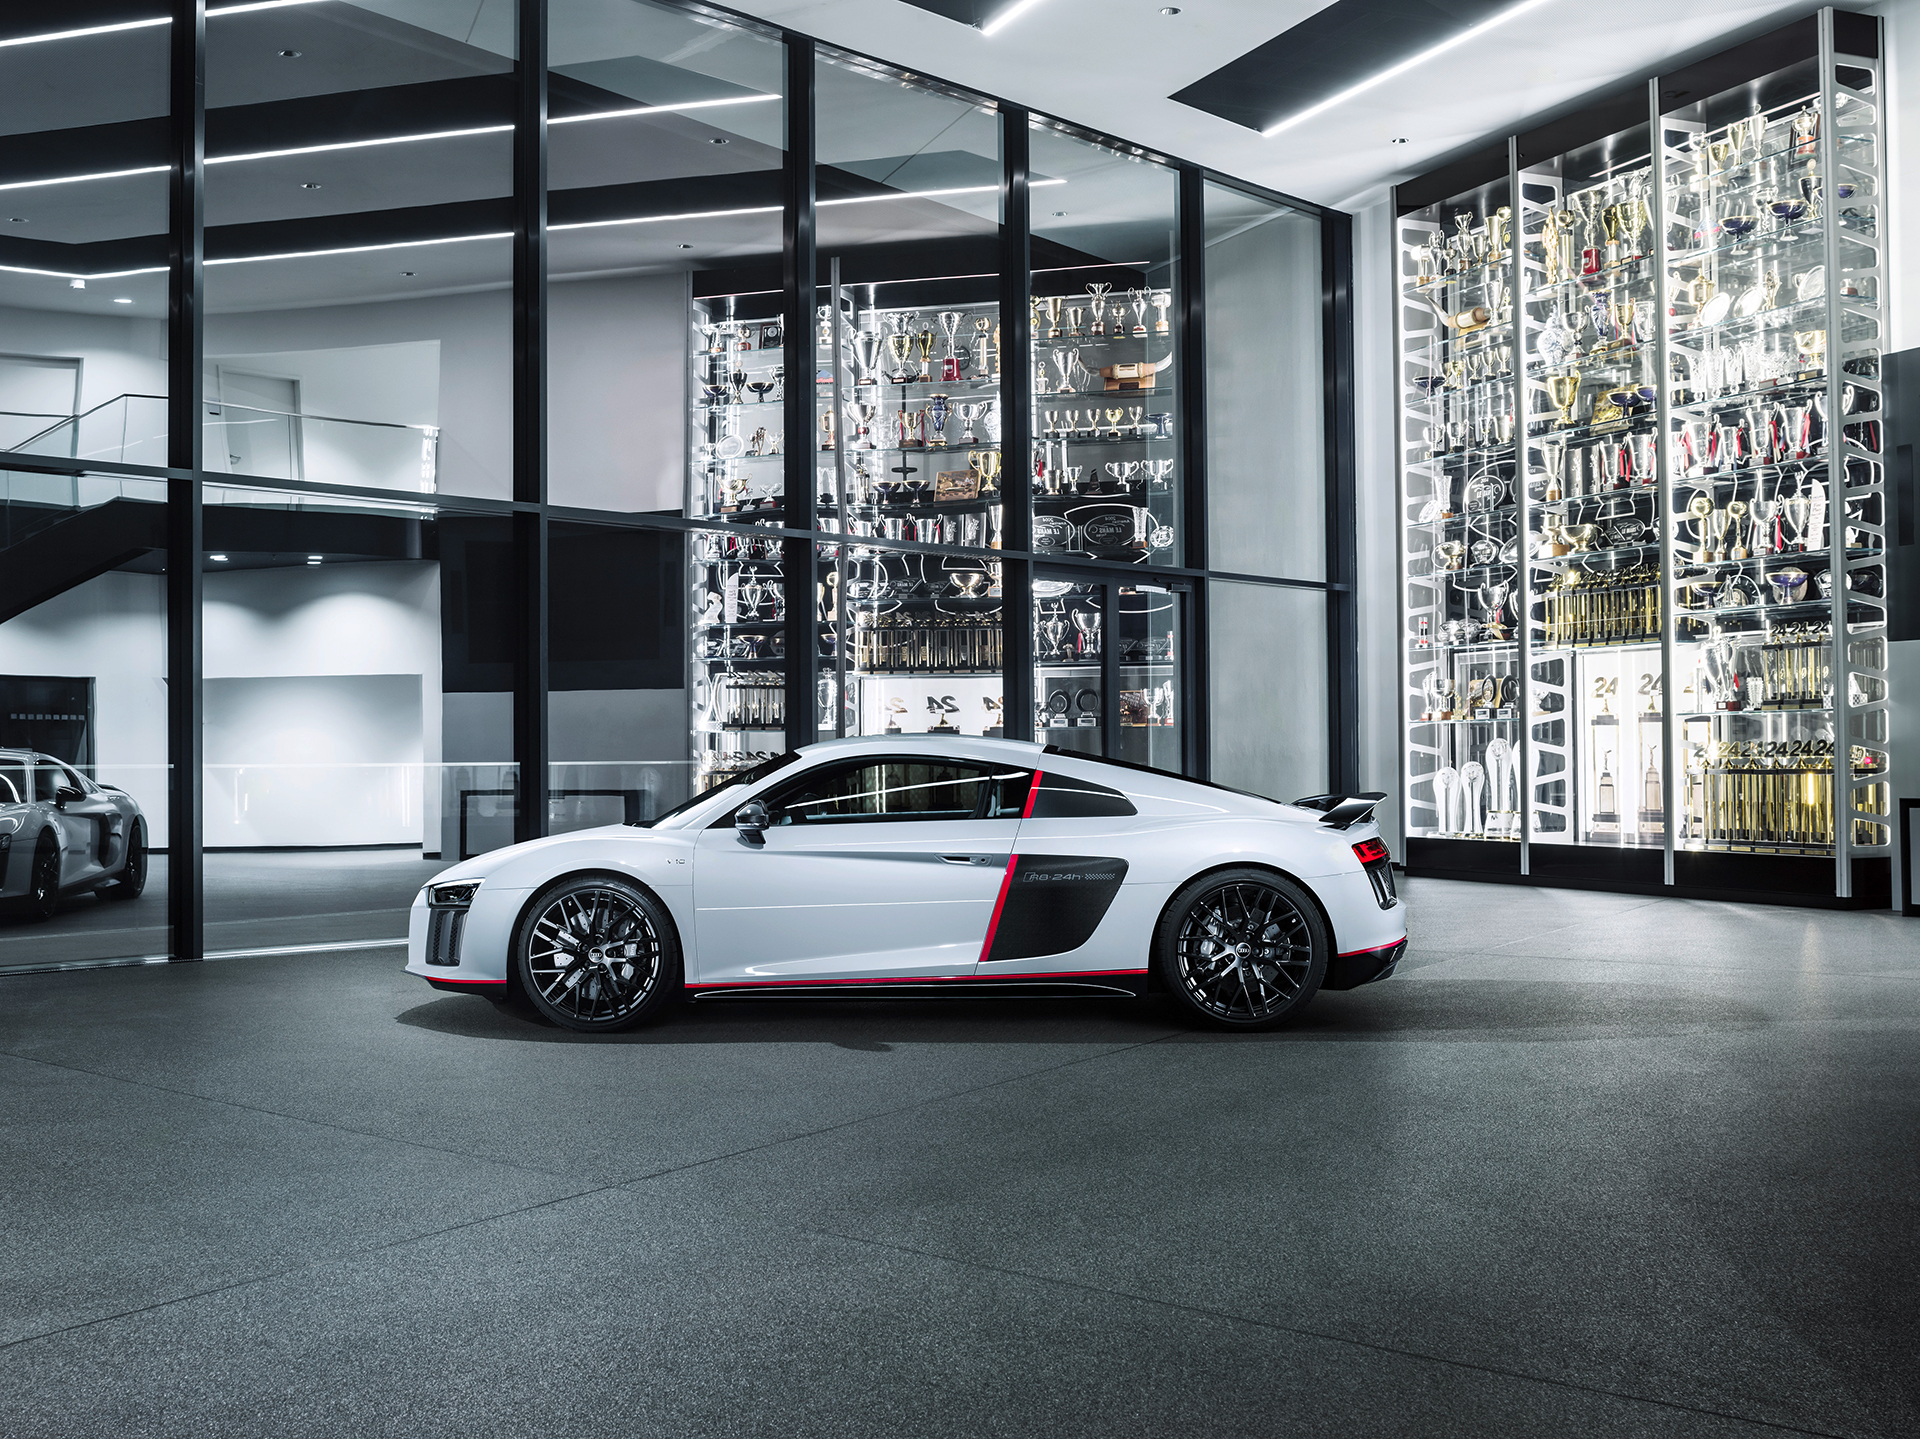 Audi R8 V10 selection 24h - 2016 - side-face / profil